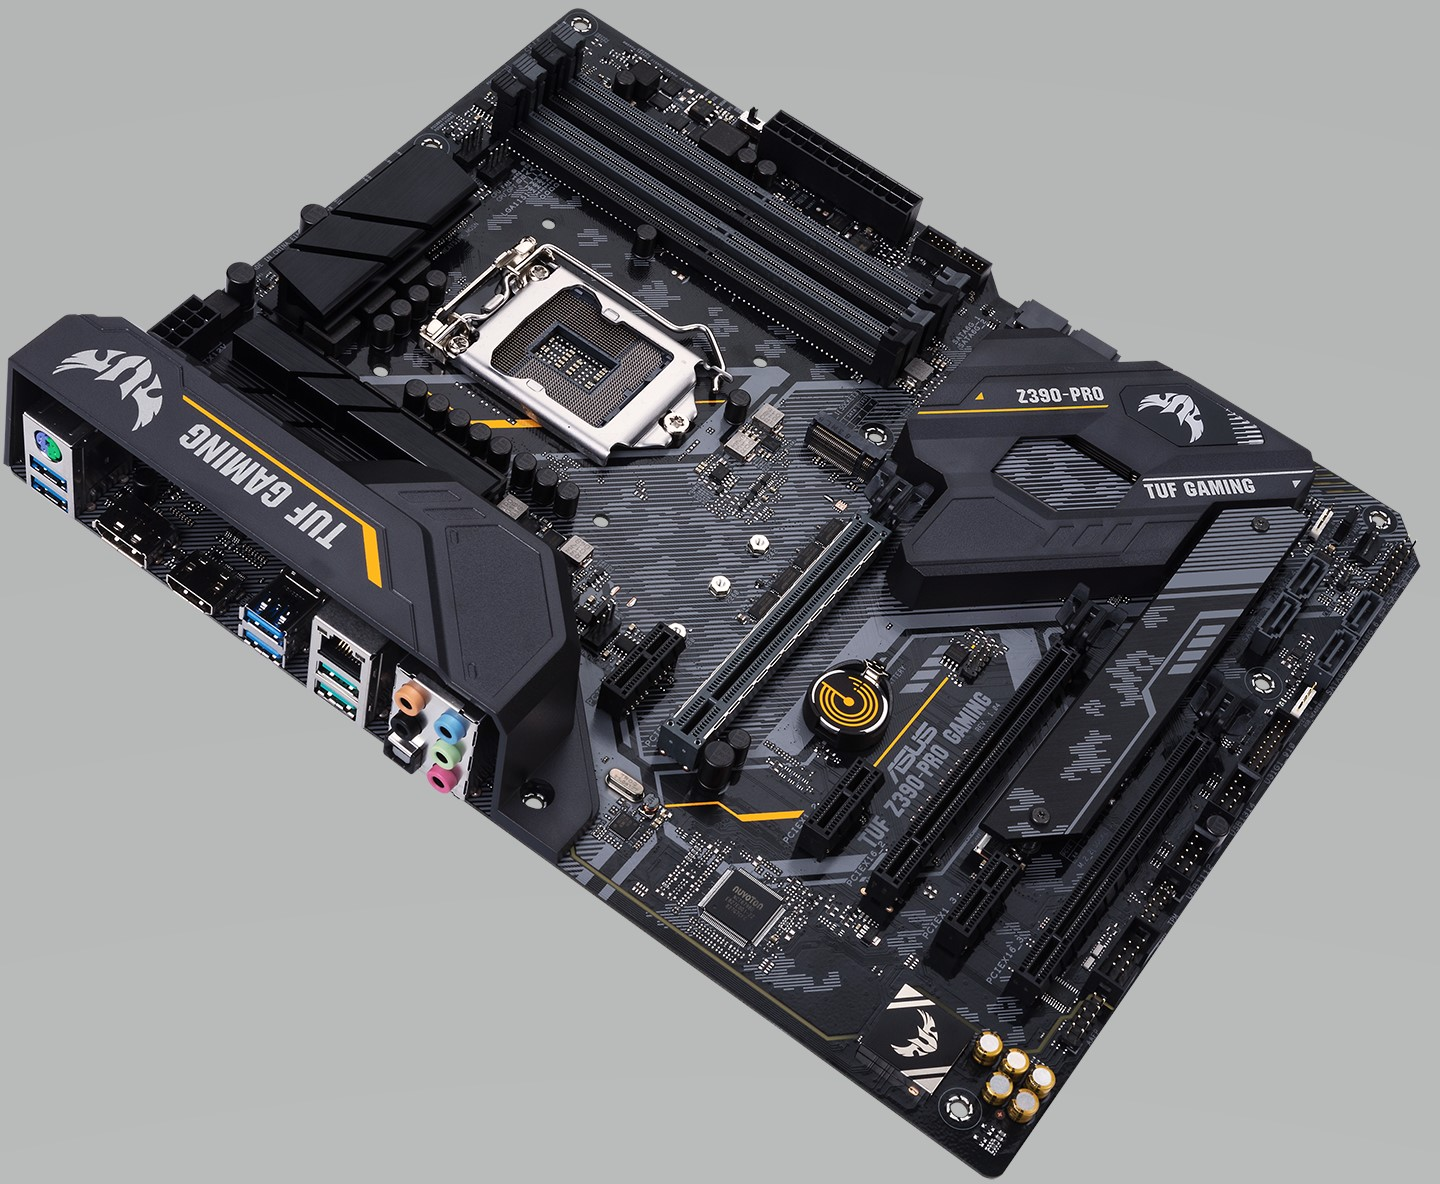 ASUS TUF Z390 Pro Gaming - Intel Z390 Motherboard Overview: 50+